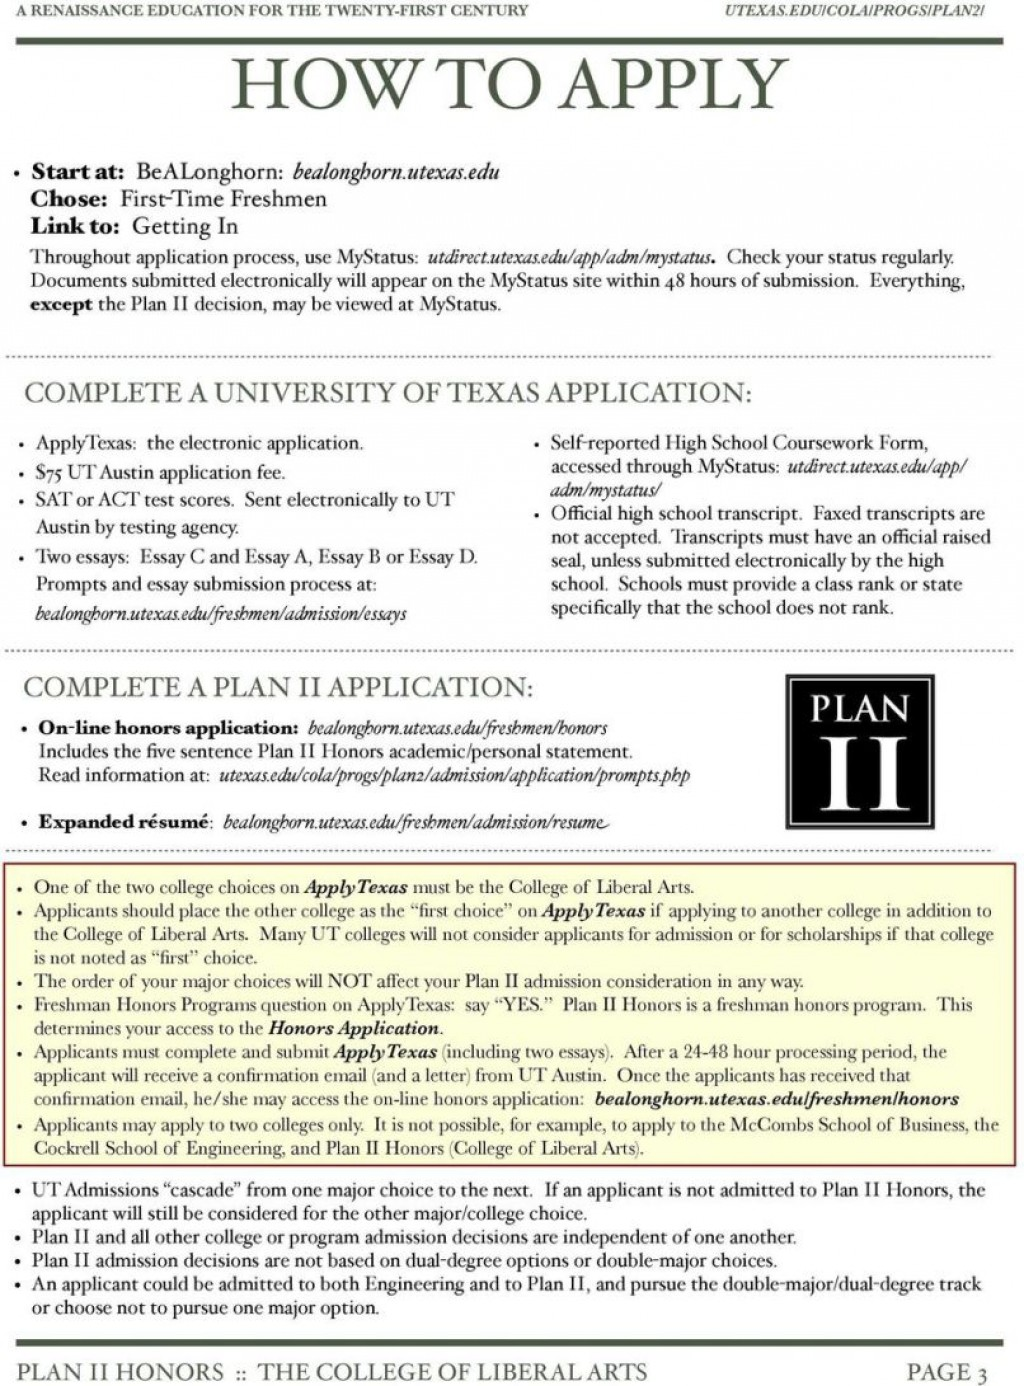 005 Applytexas Essay Prompts Poemdoc Or Apply Texas Topics P Fearsome Word Limit 2017 Ut Austin Large